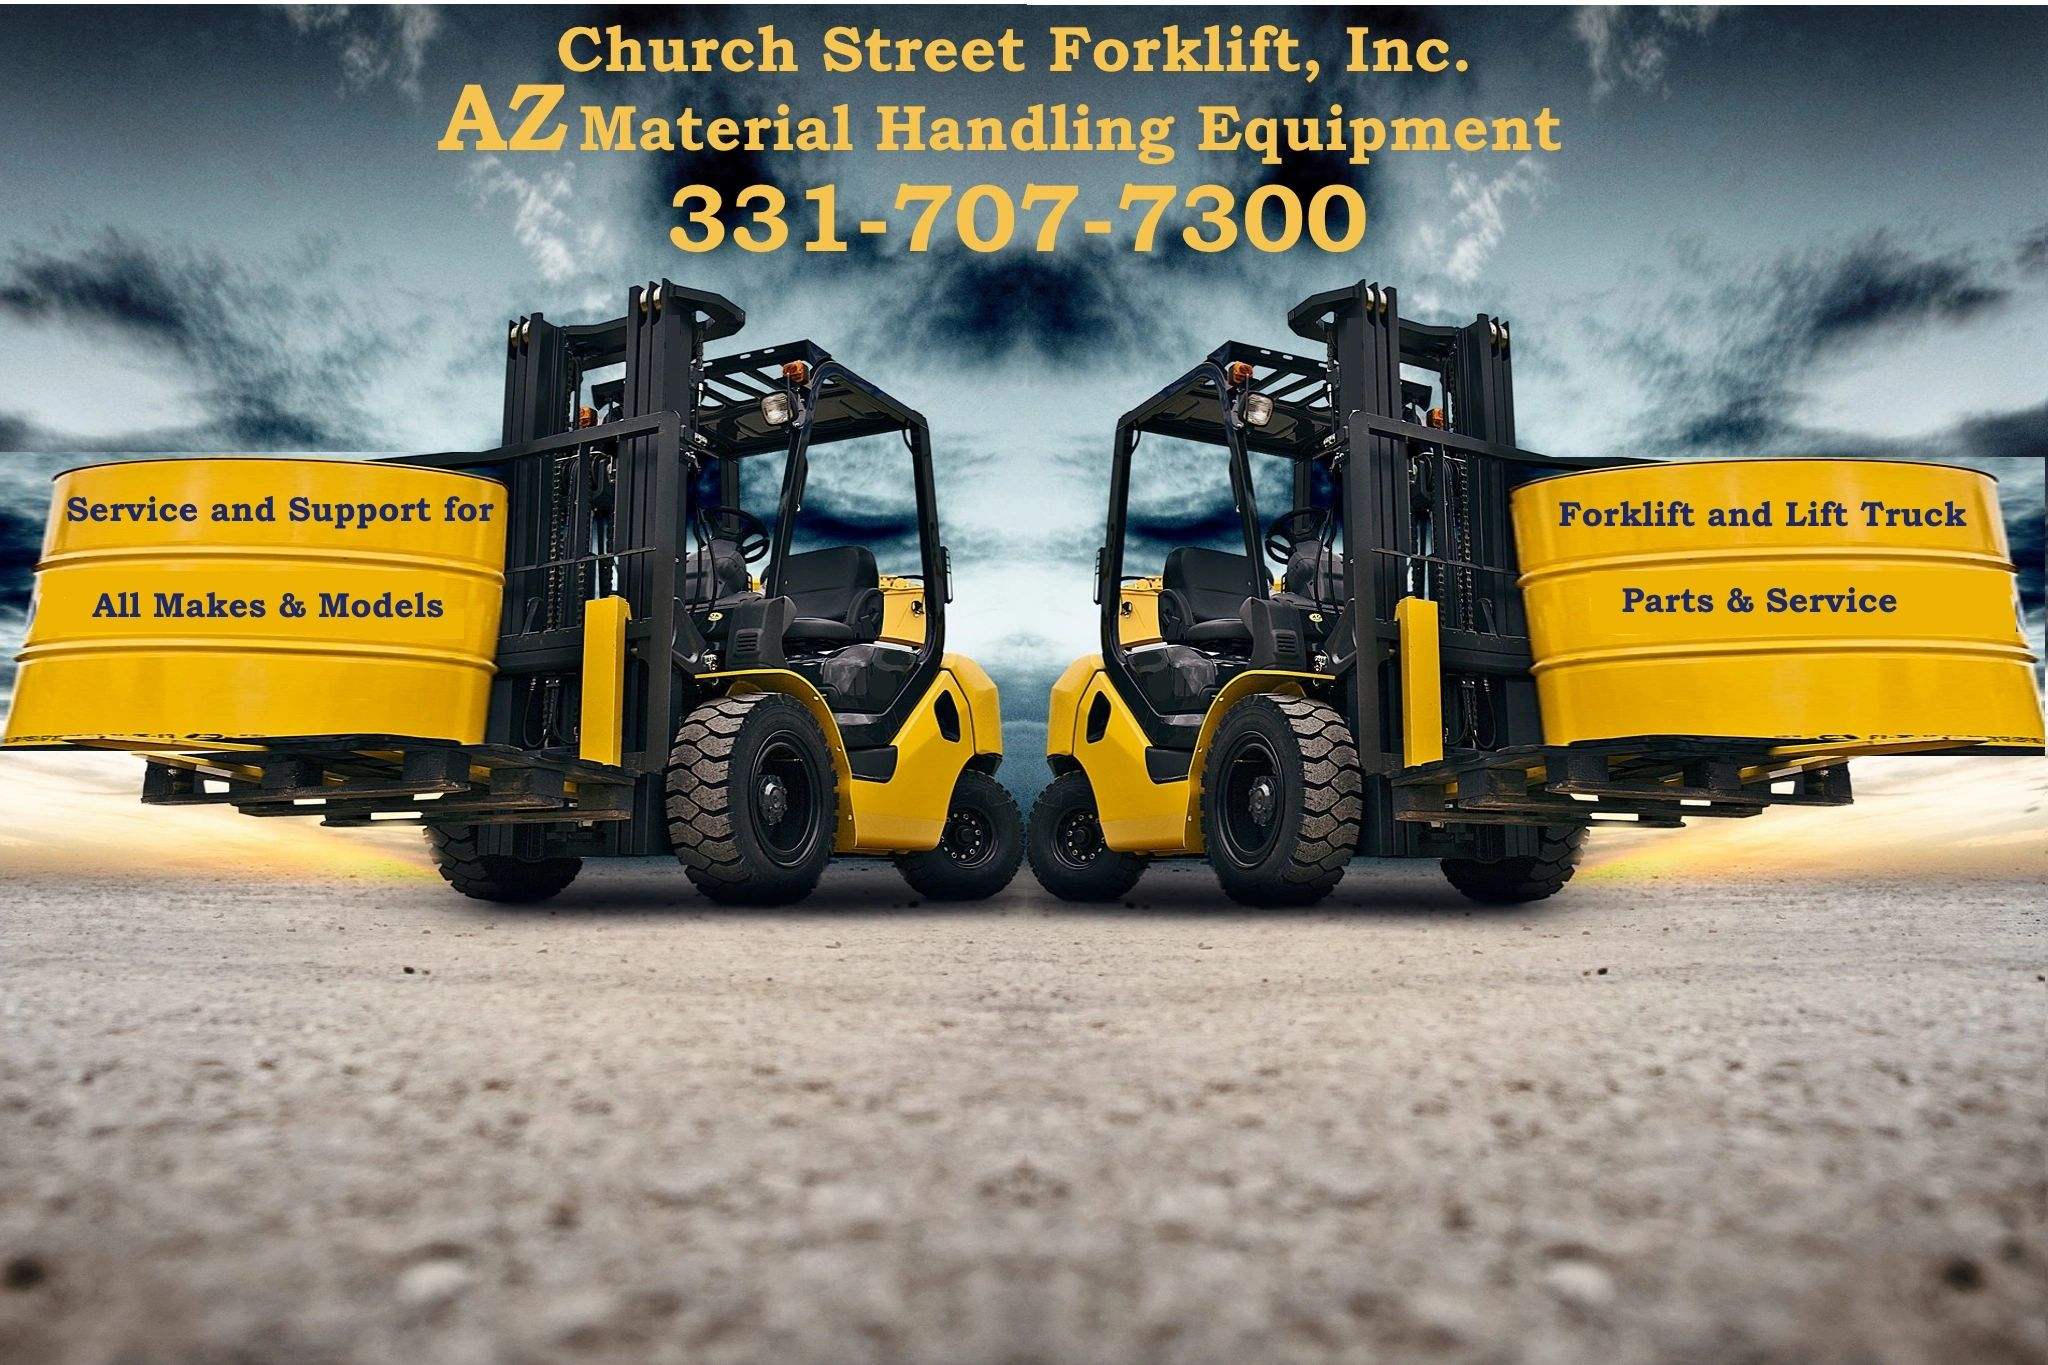 H | Forklift Repair and All Hydraulic Repair Also Service PM